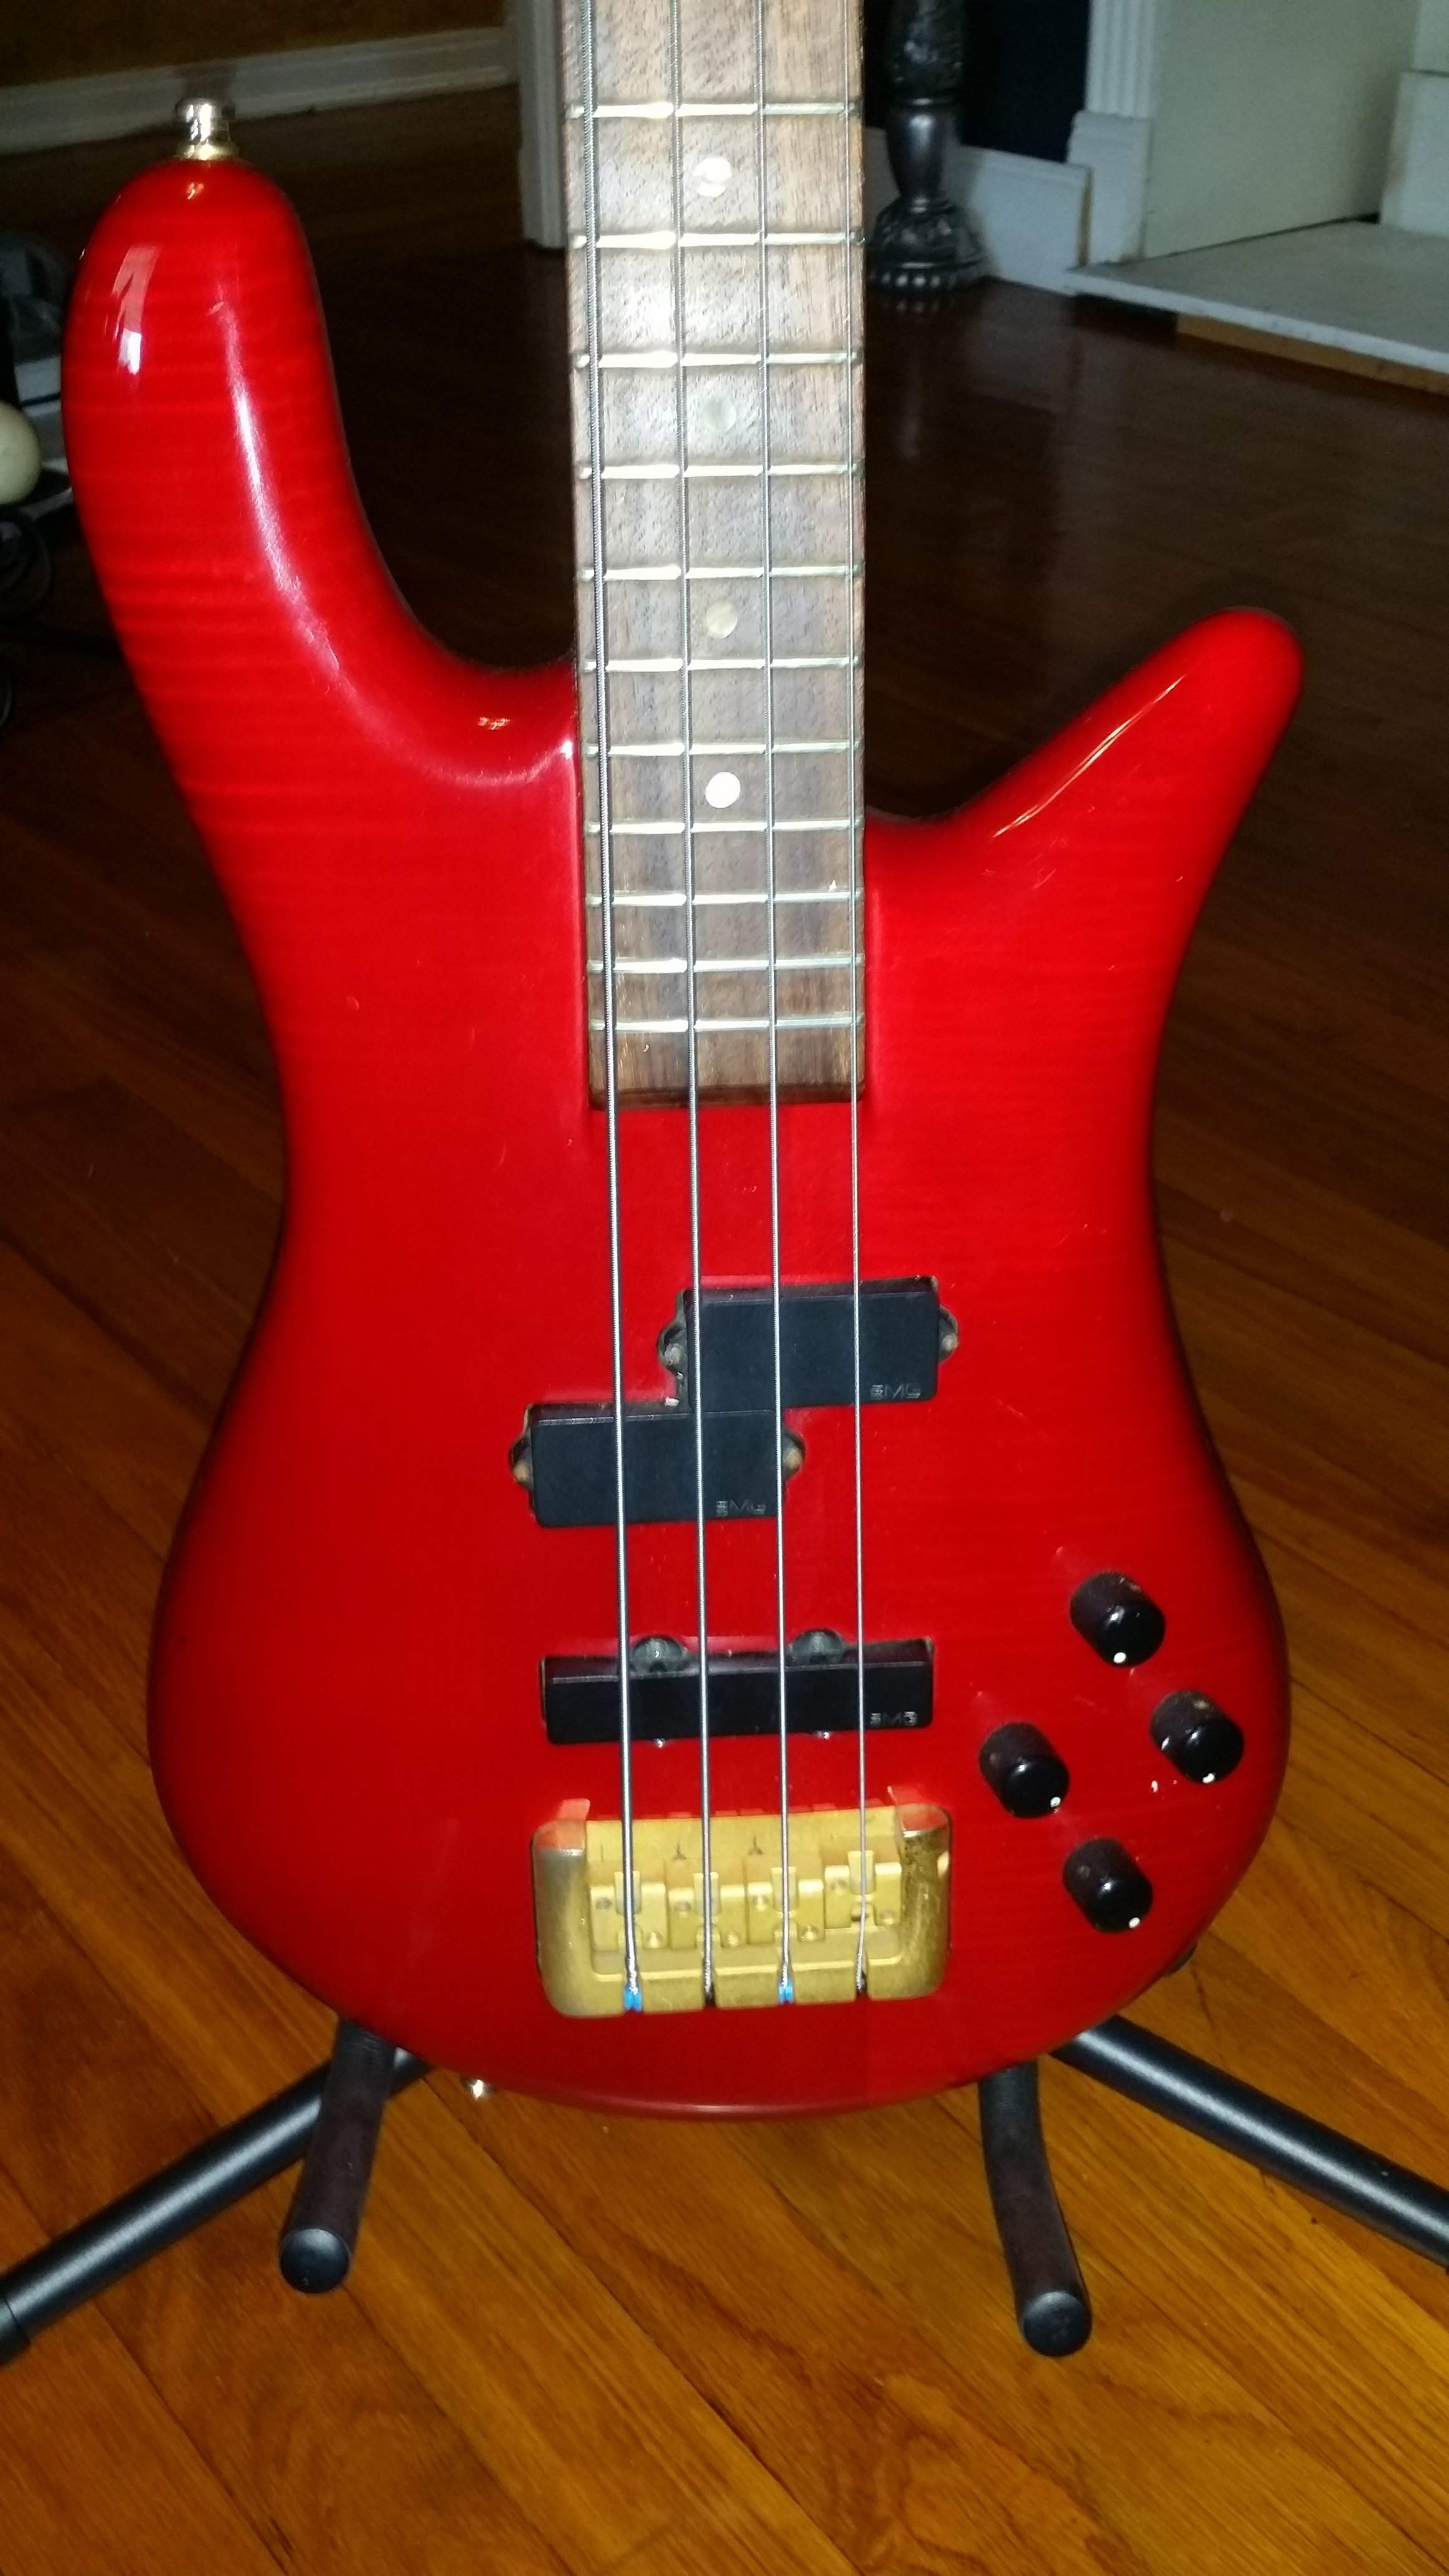 Spector Bass Wiring Diagram Qubee Quilts Input Jack Residential Electrical Symbols